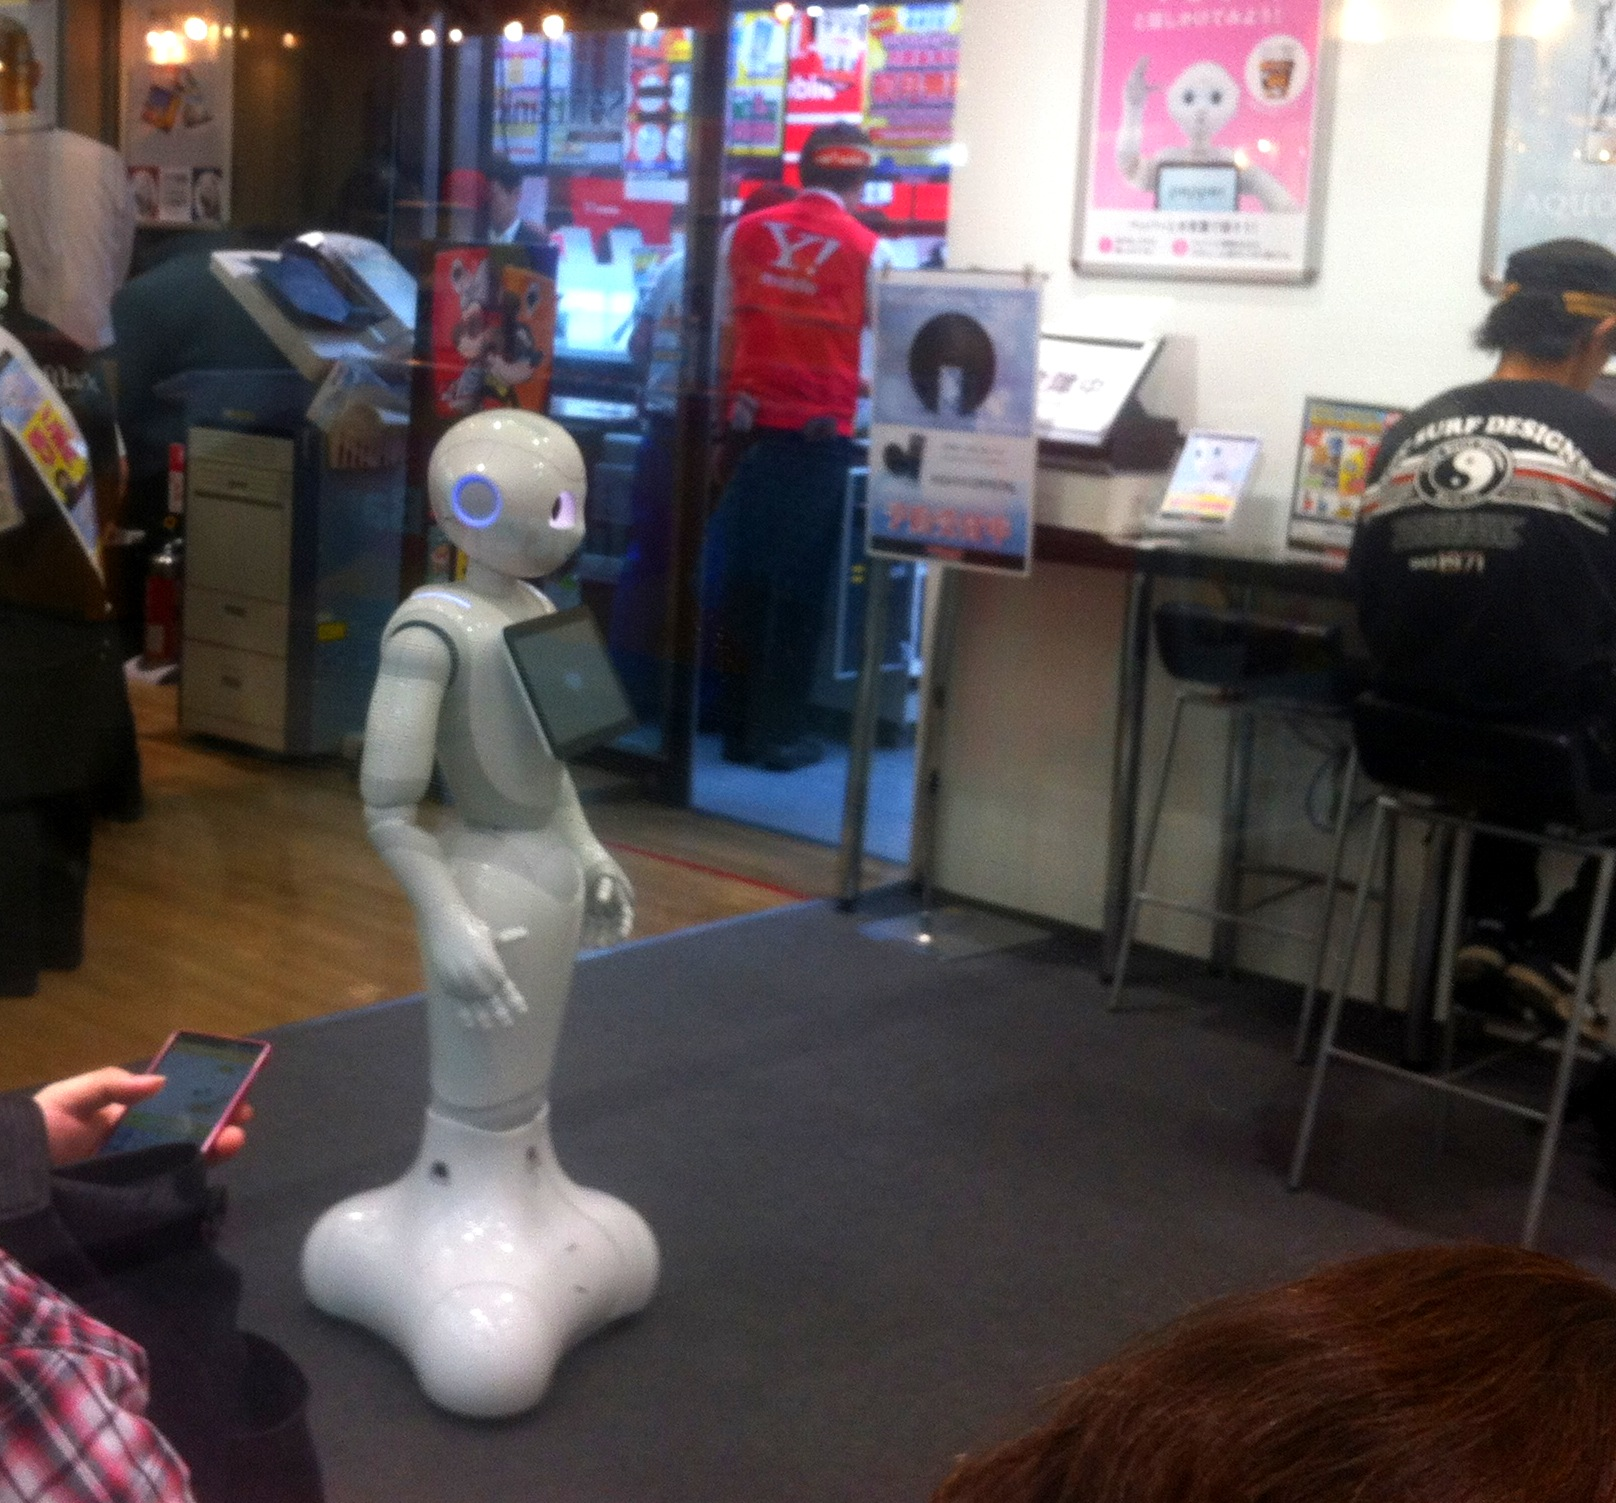 Pepper, a humanoid robot developed by SoftBank Mobile and Aldebaran Robotics.